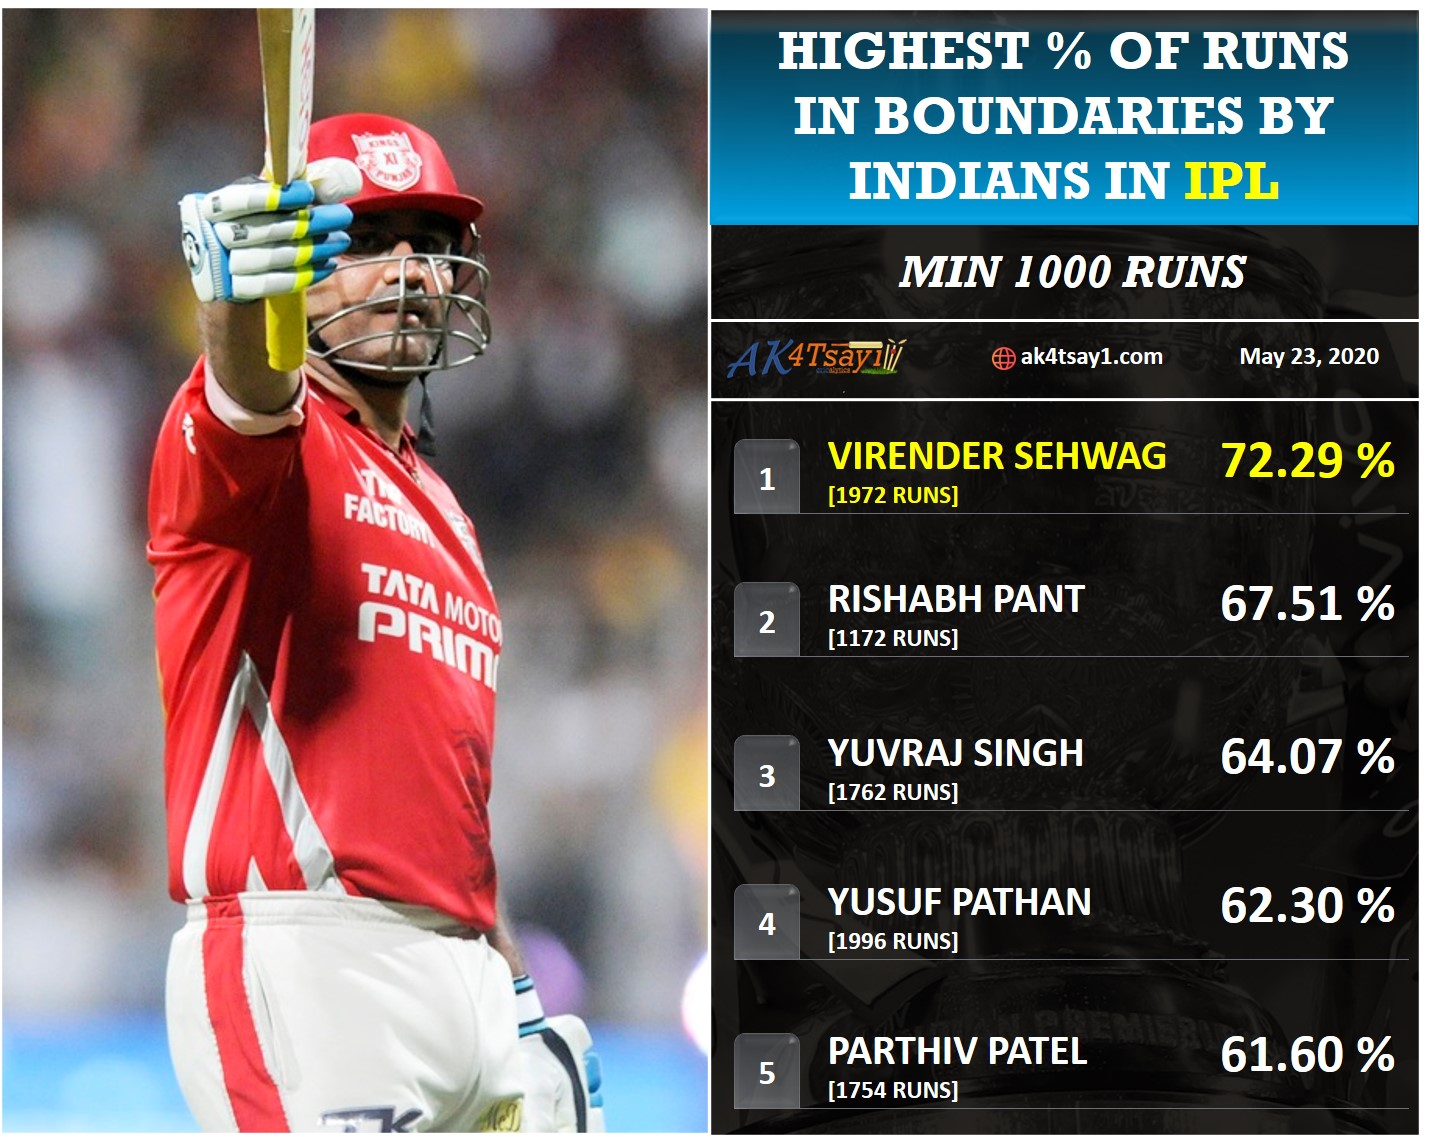 Highest percentage of runs in Boundaries in IPL by Indians